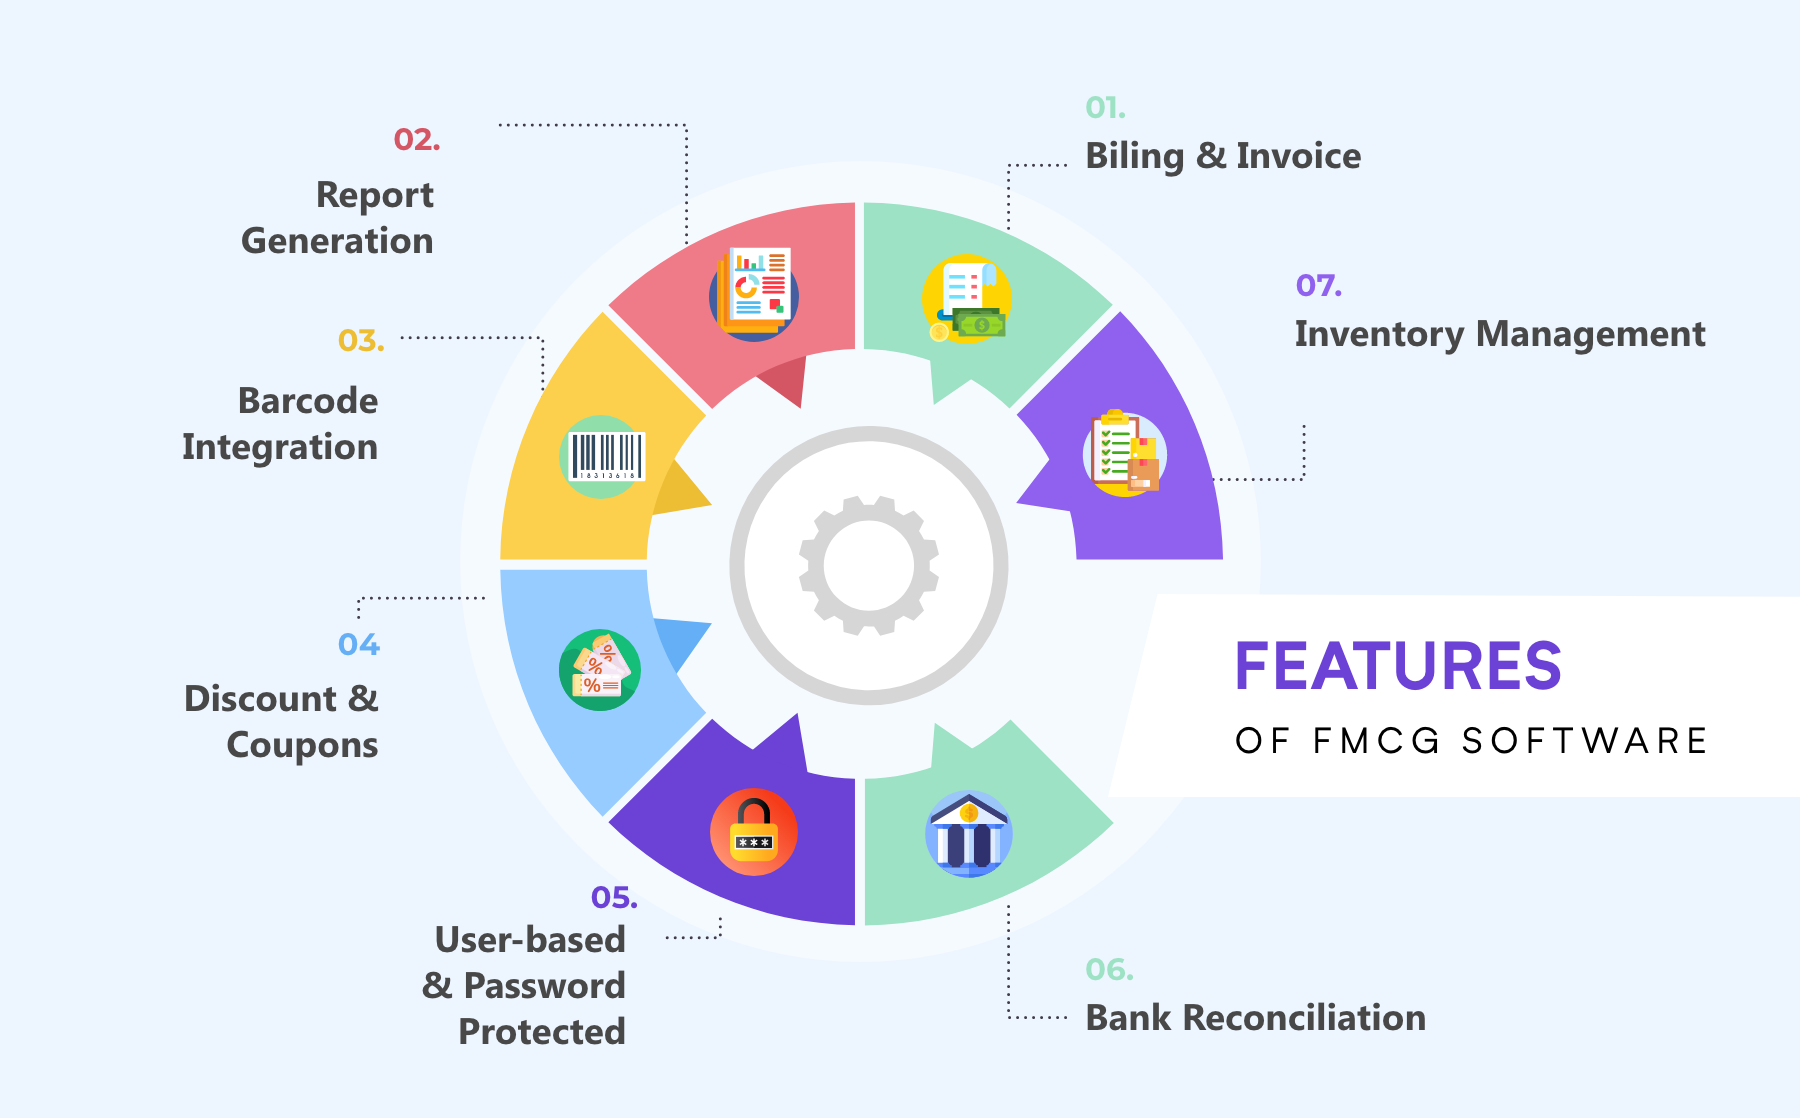 Features Of FMCG Software